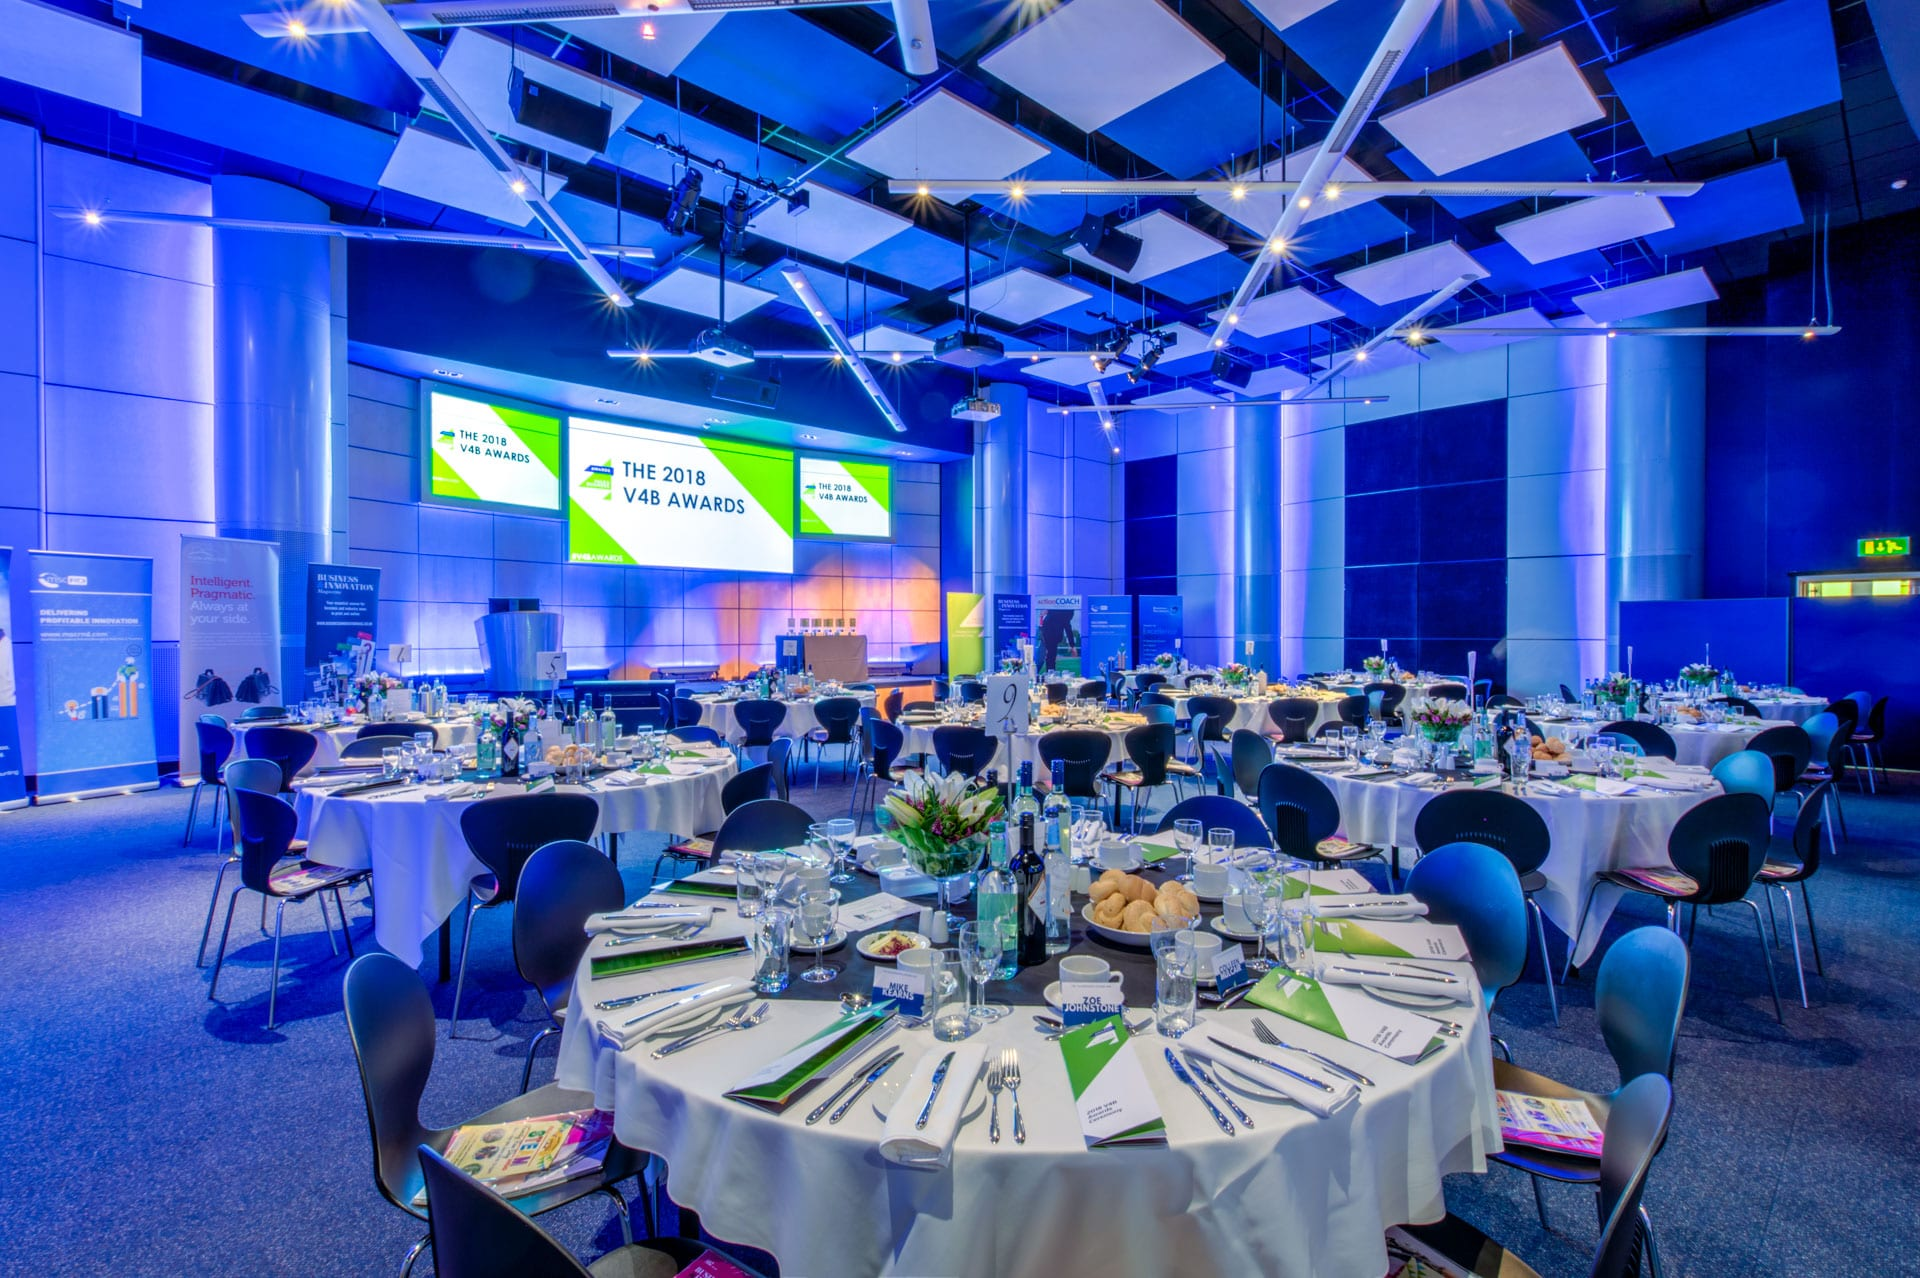 vale 4 business awards